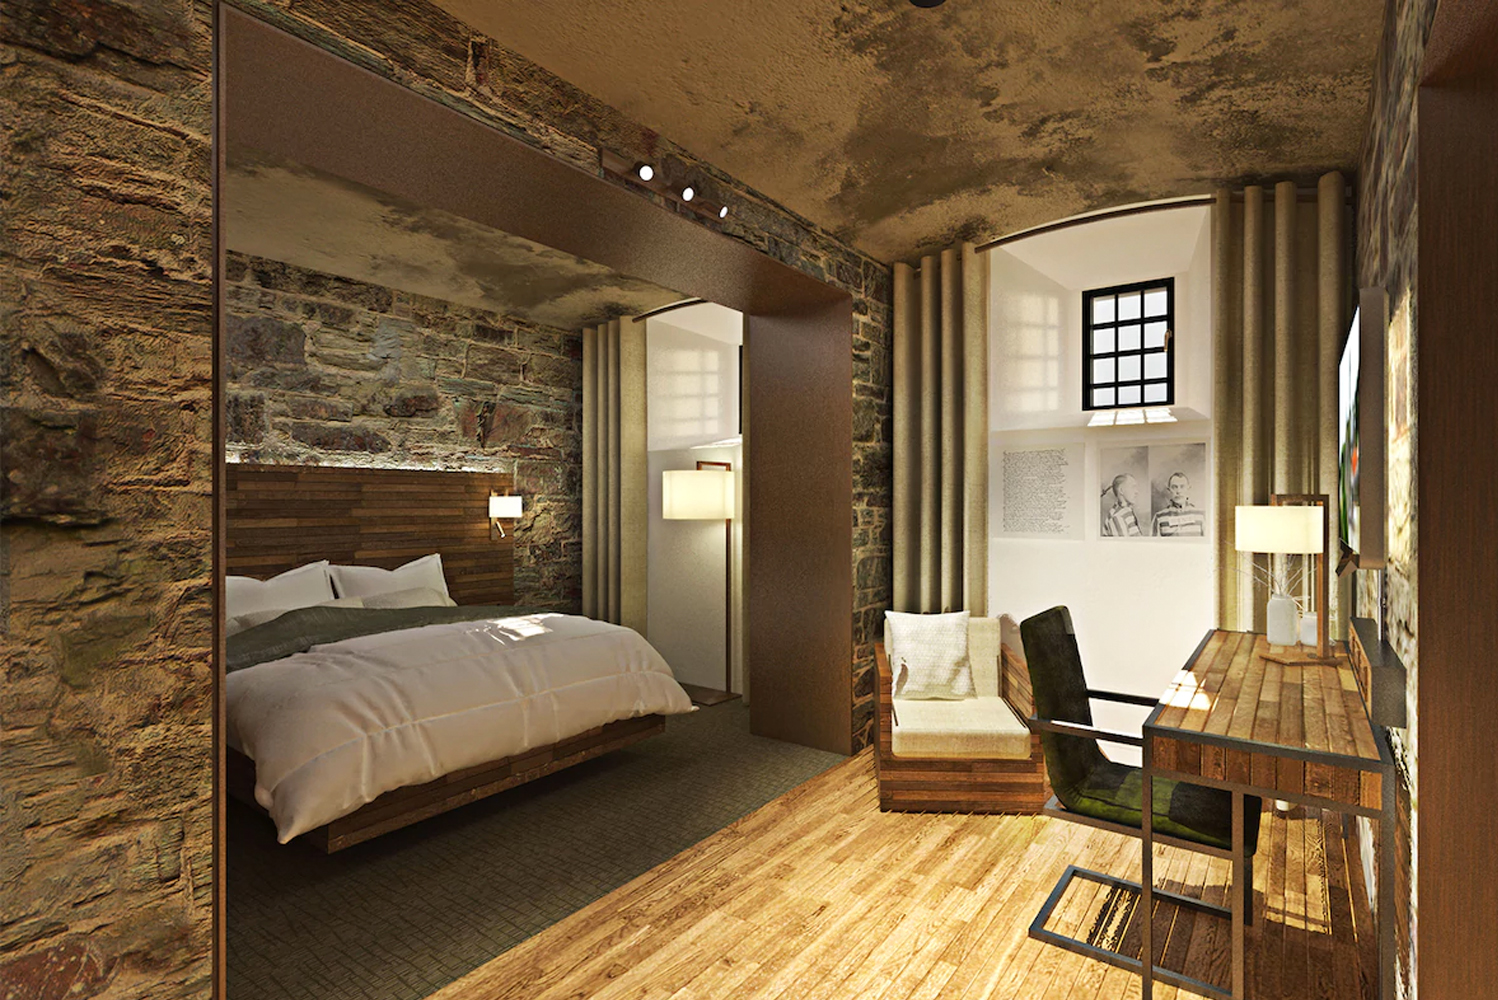 The design firm plans to completely refurbish the two wings of cell blocks to house 63 hotel rooms.